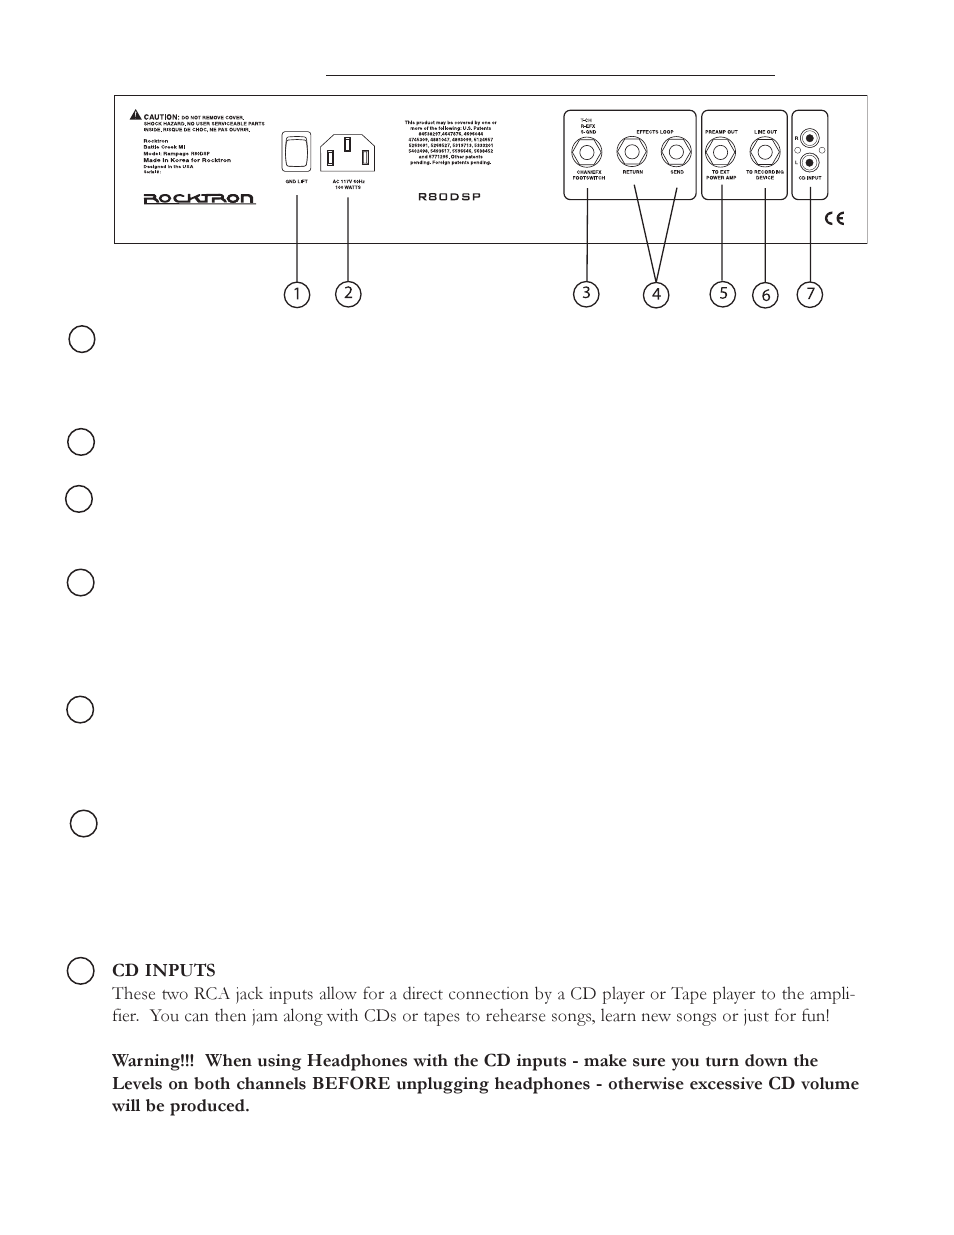 Back Panel Rocktron Rampage R80 Dsp User Manual Page 5 8 1 4 Jack Wiring For Footswitch